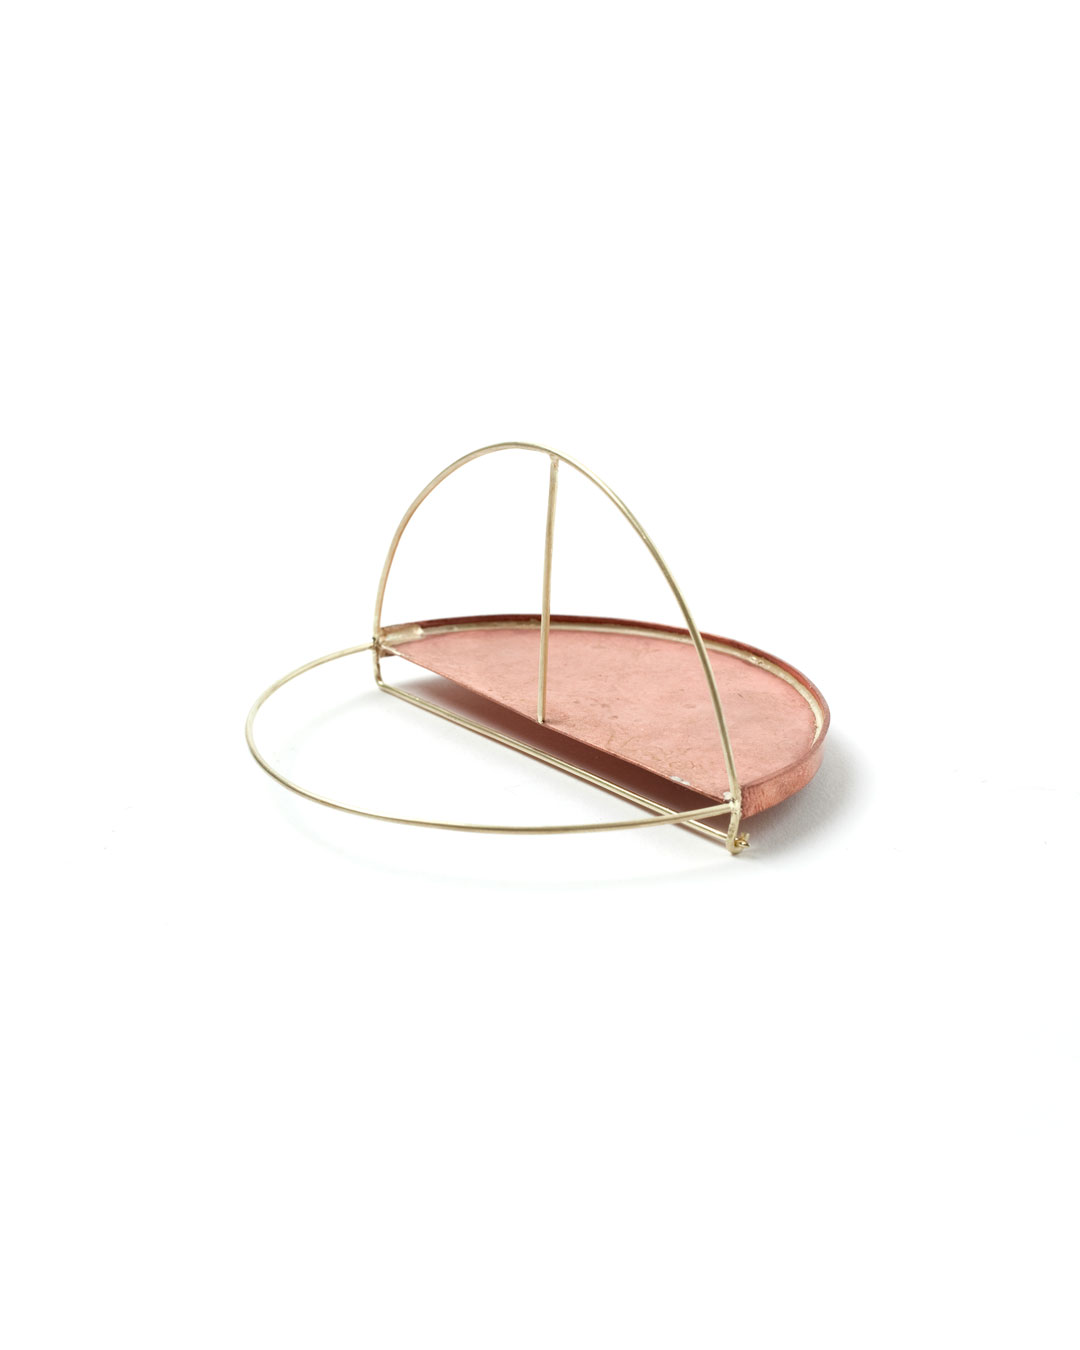 Florian Weichsberger, Sun #9, 2019, brooch; copper, 14ct gold, 71 x 71 x 40 mm, €1090